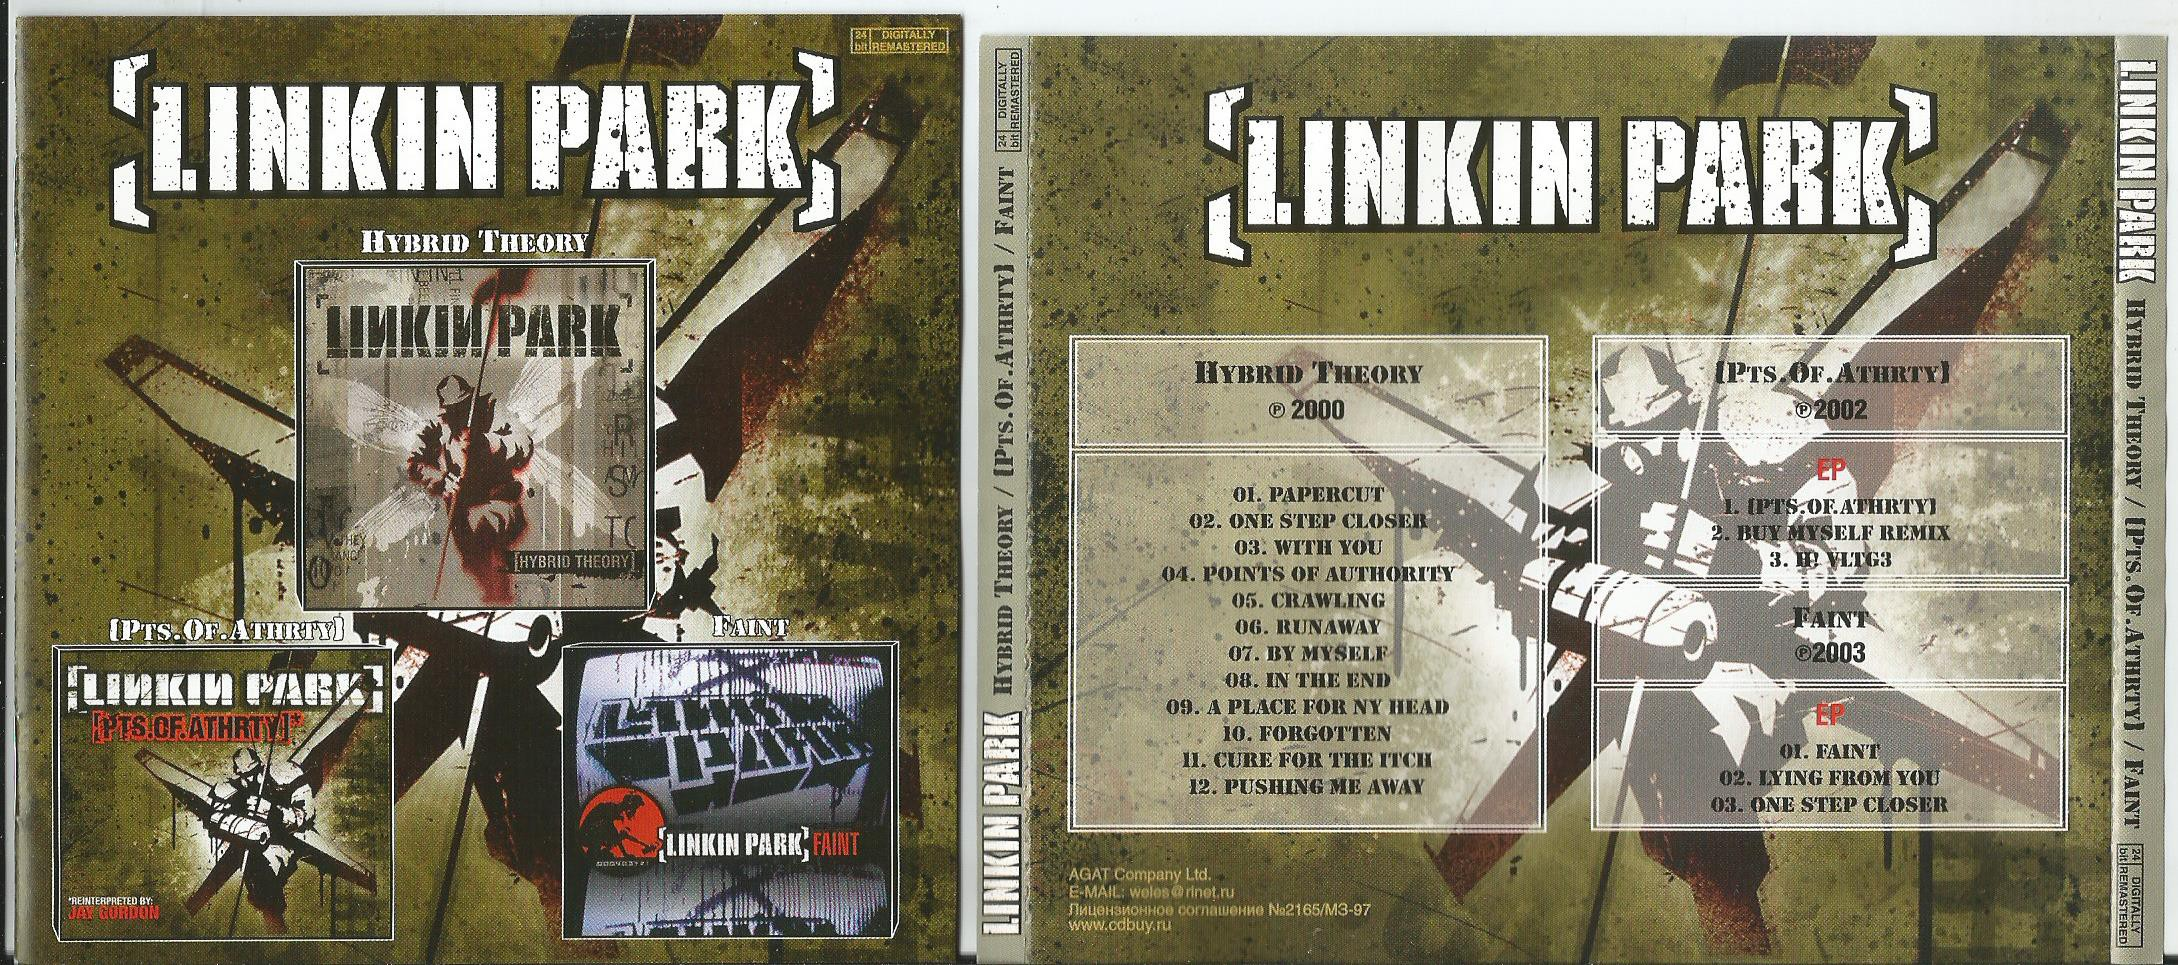 Hybrid theory/ pts  of athrty/ faint (all in 1cd)(8page booklet with  lyrics) by Linkin Park, CD with apexmusic